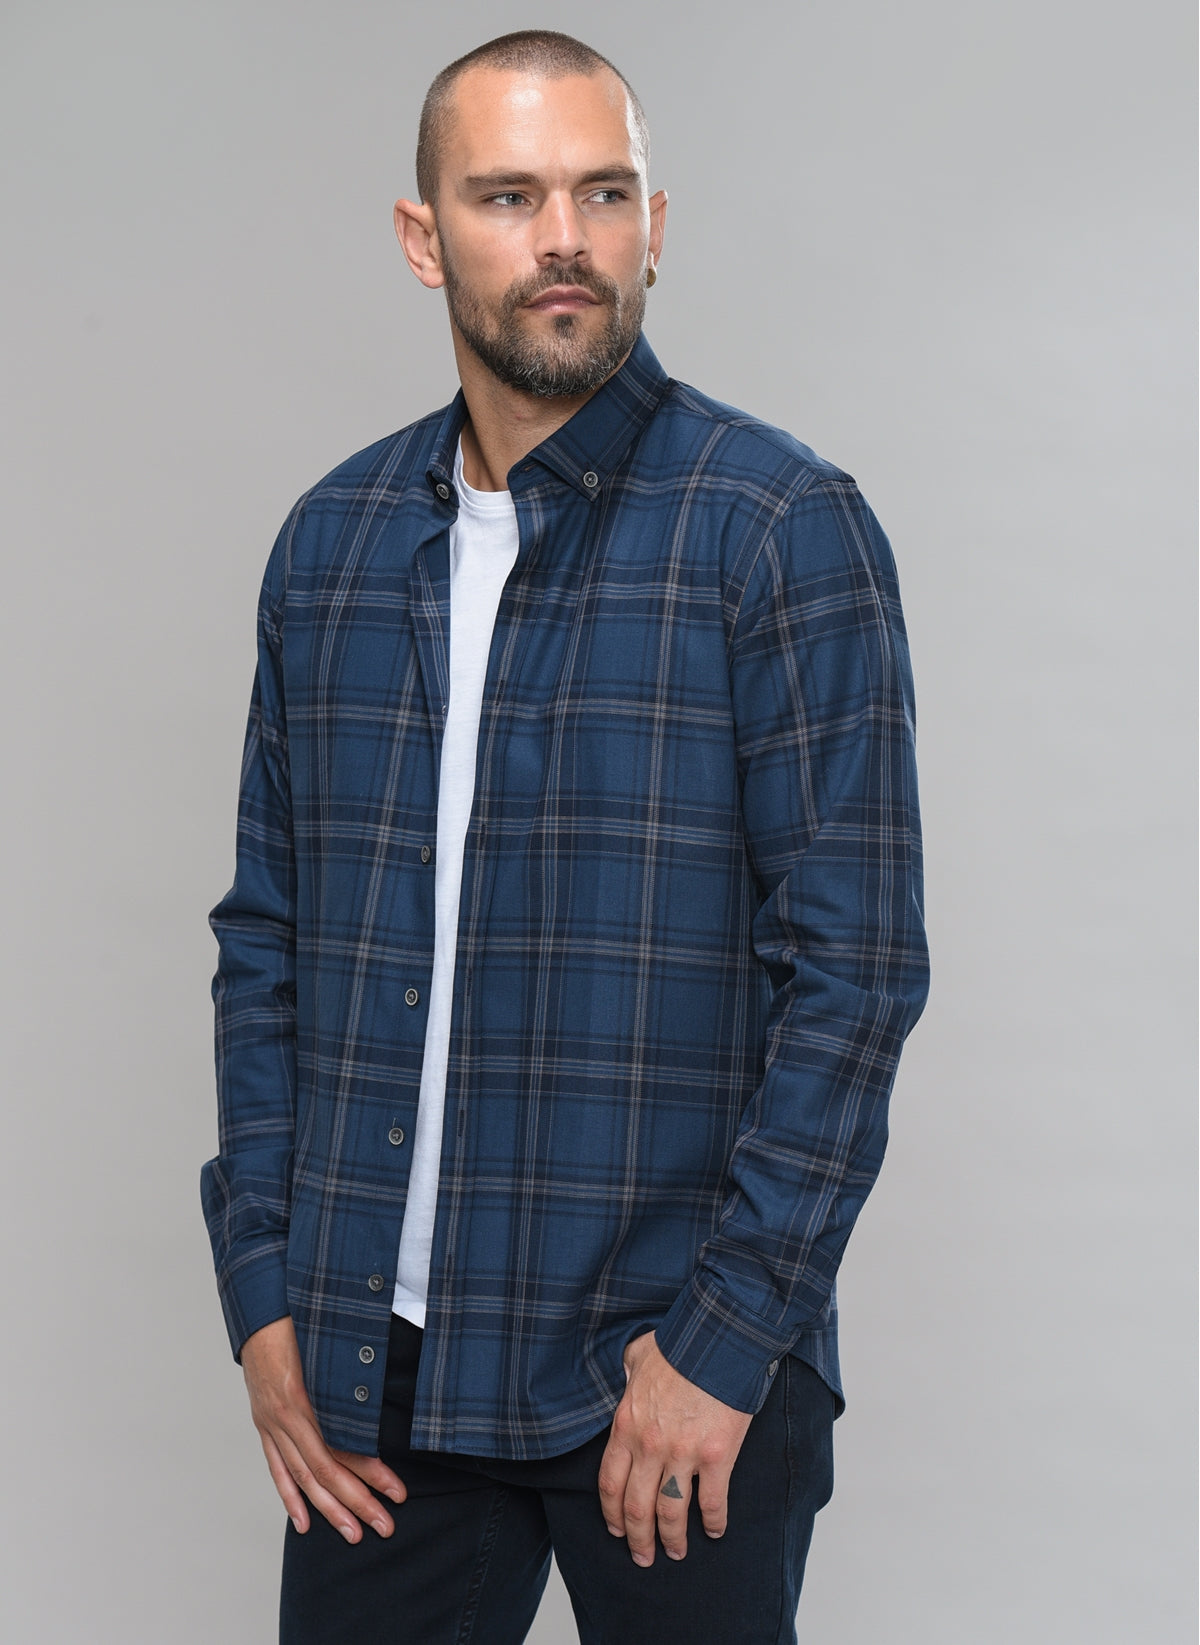 Plaid Button-Down Shirt in Indigo Blue